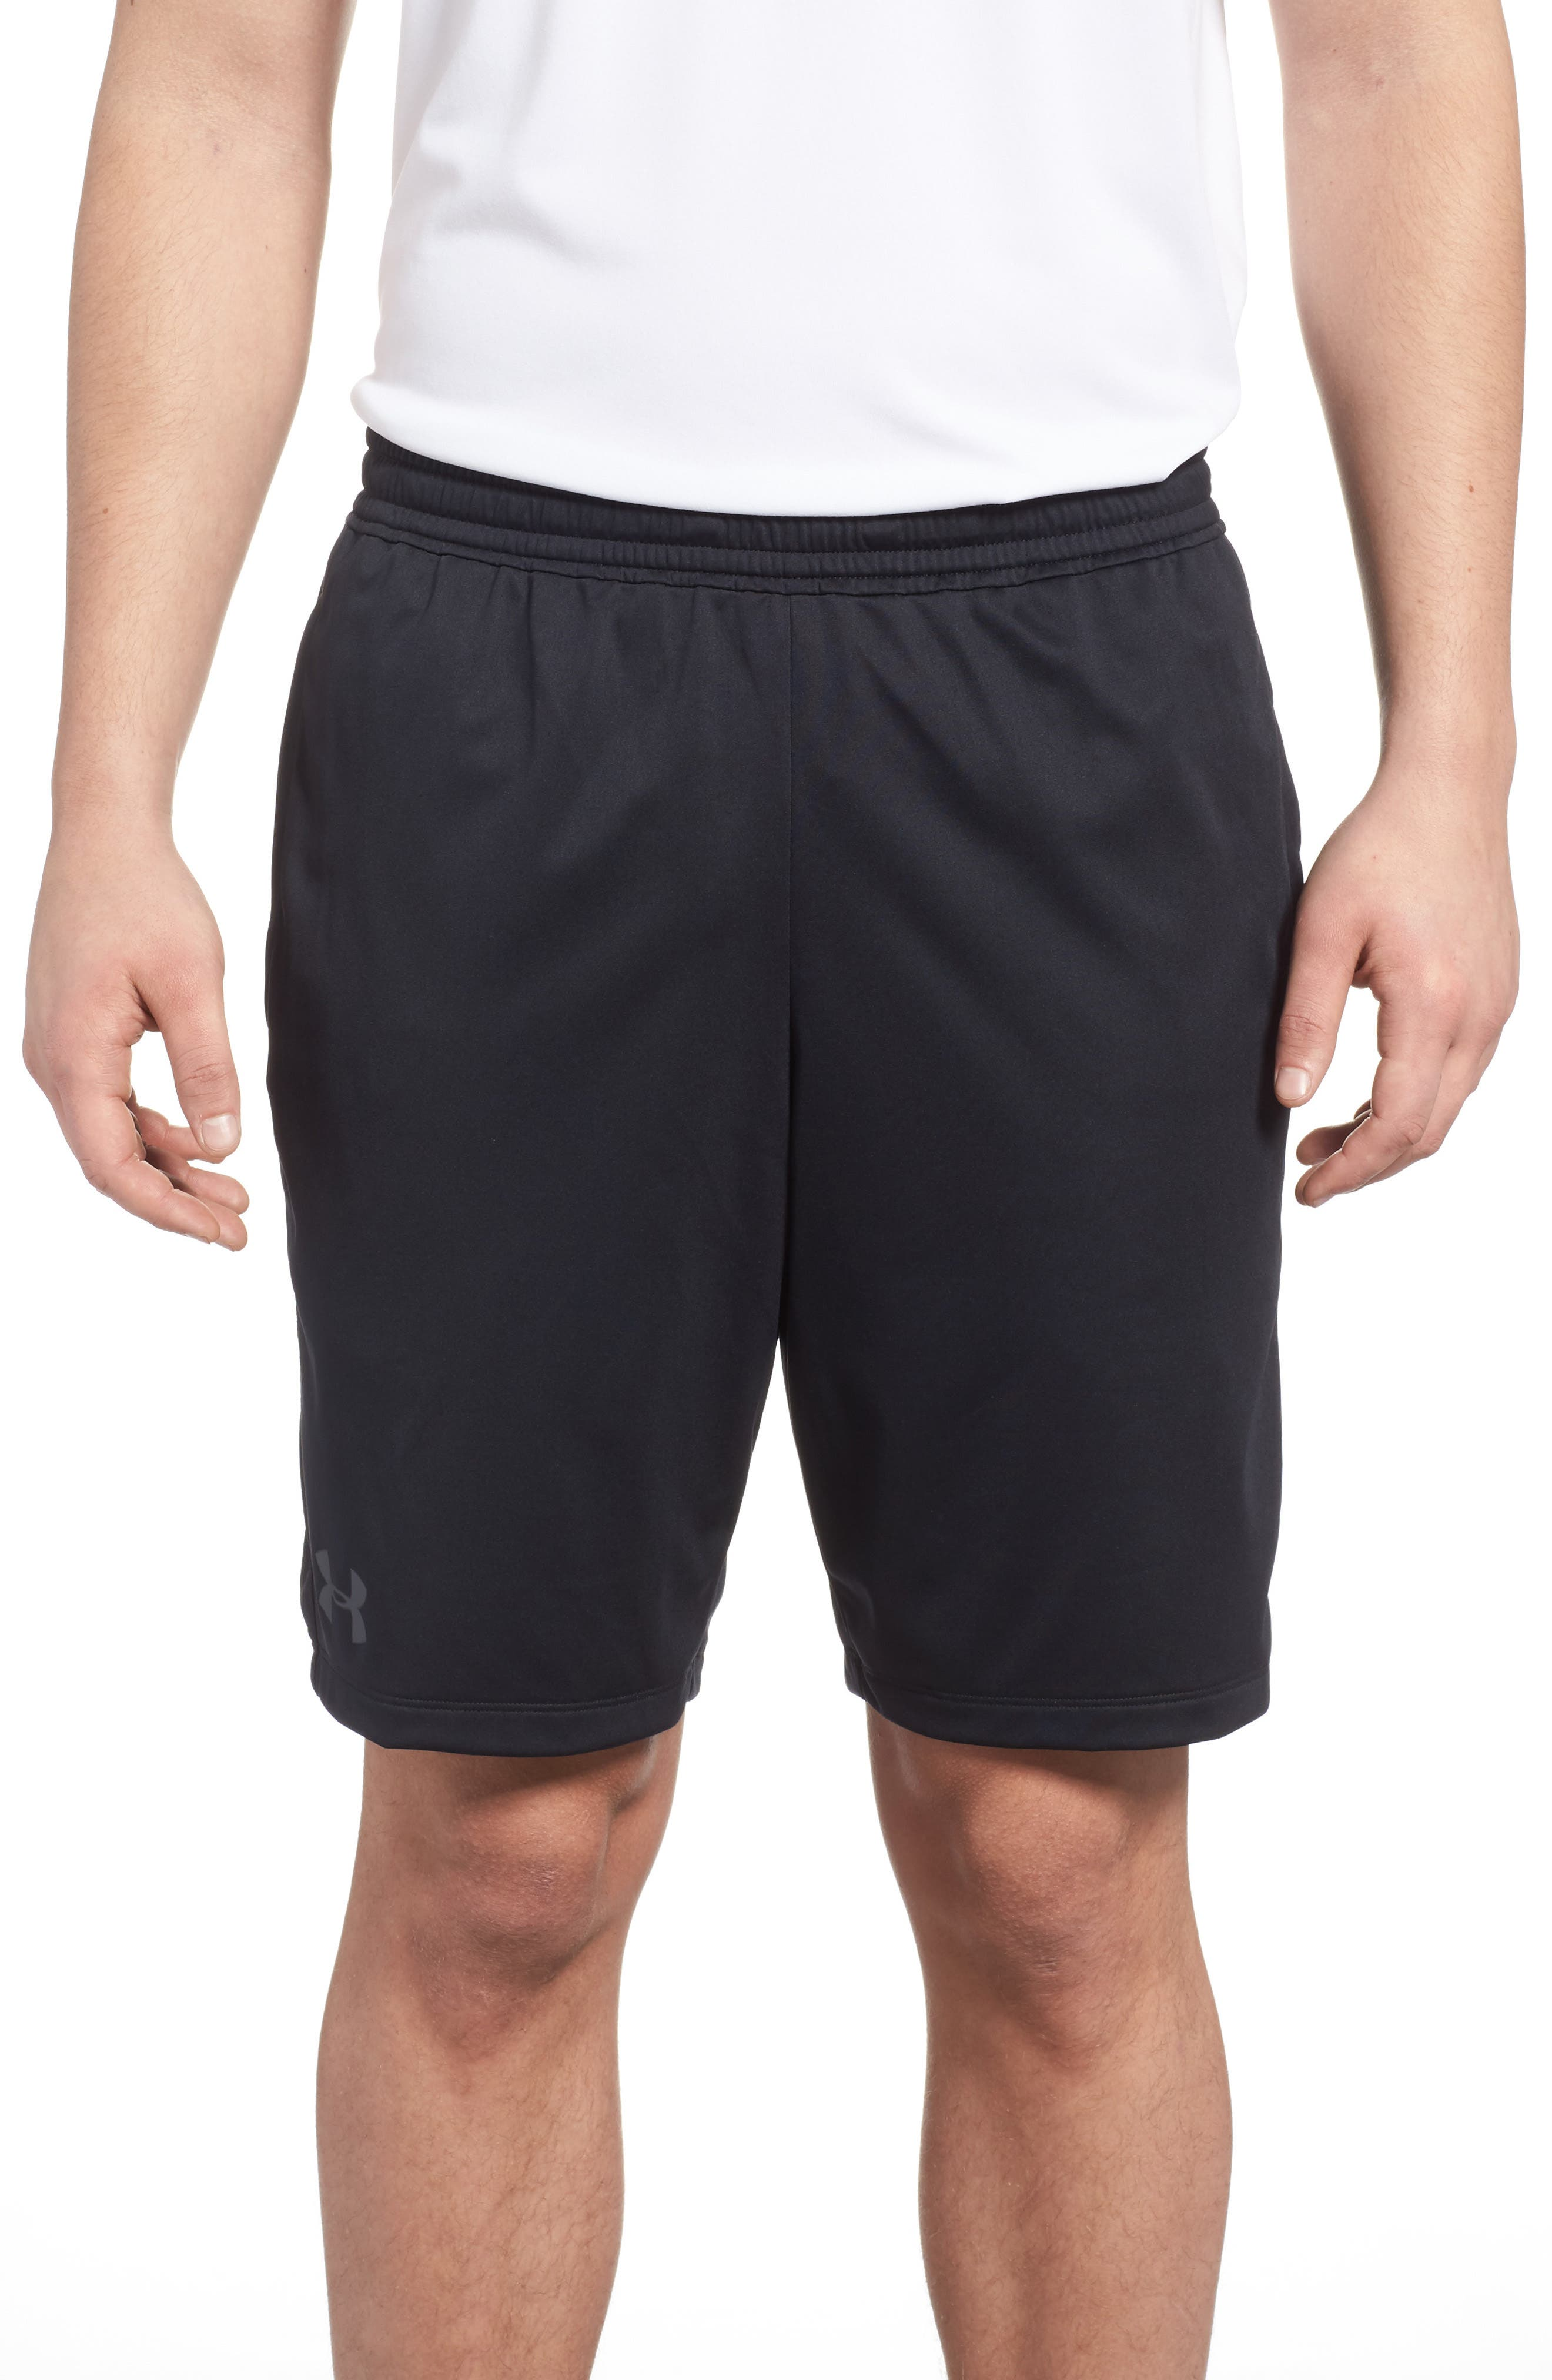 Raid 2.0 Classic Fit Shorts,                         Main,                         color, BLACK